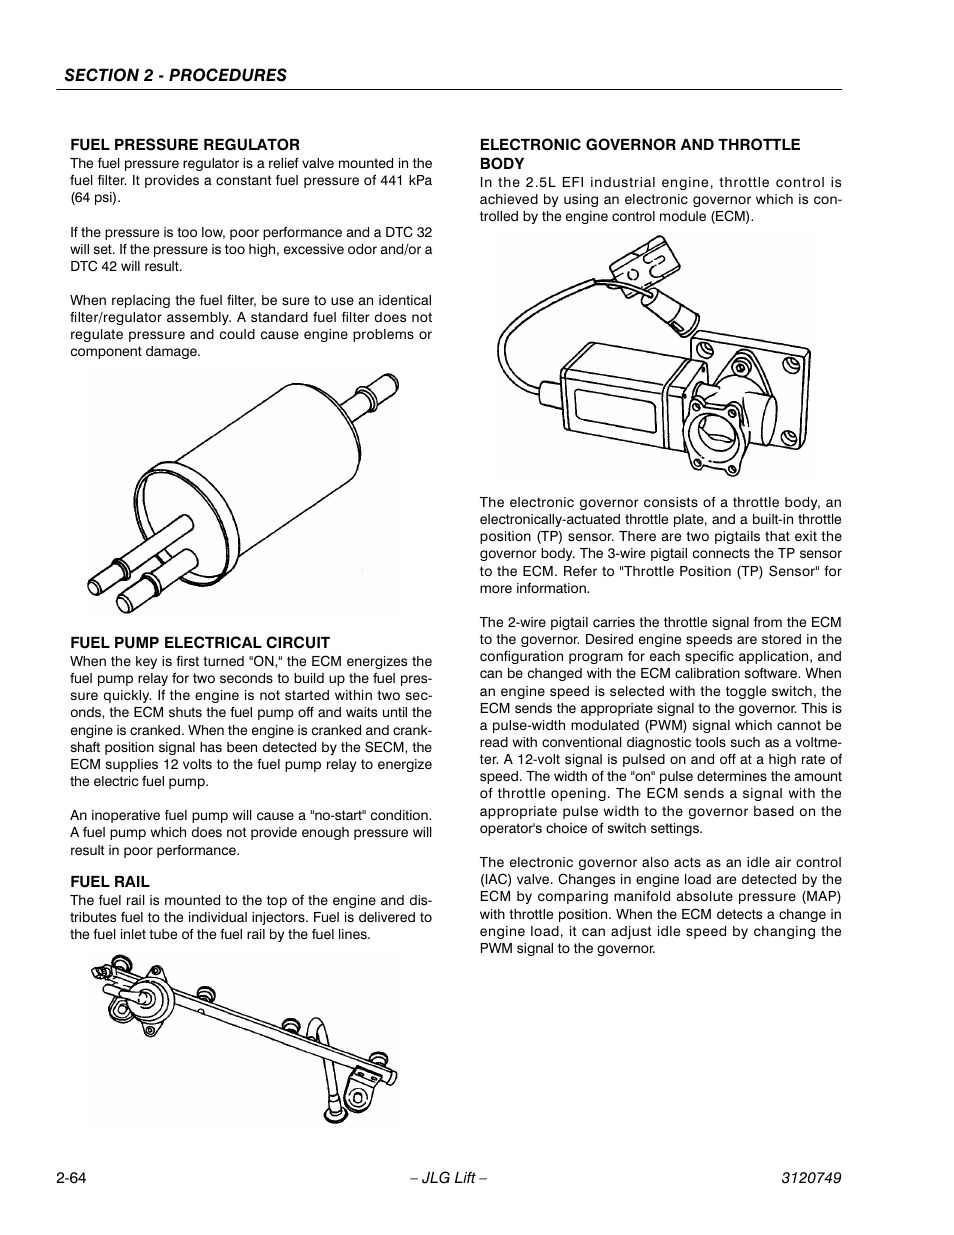 JLG 450AJ ANSI Service Manual User Manual | Page 82 / 152 | Also for: 450A  ANSI Service Manual